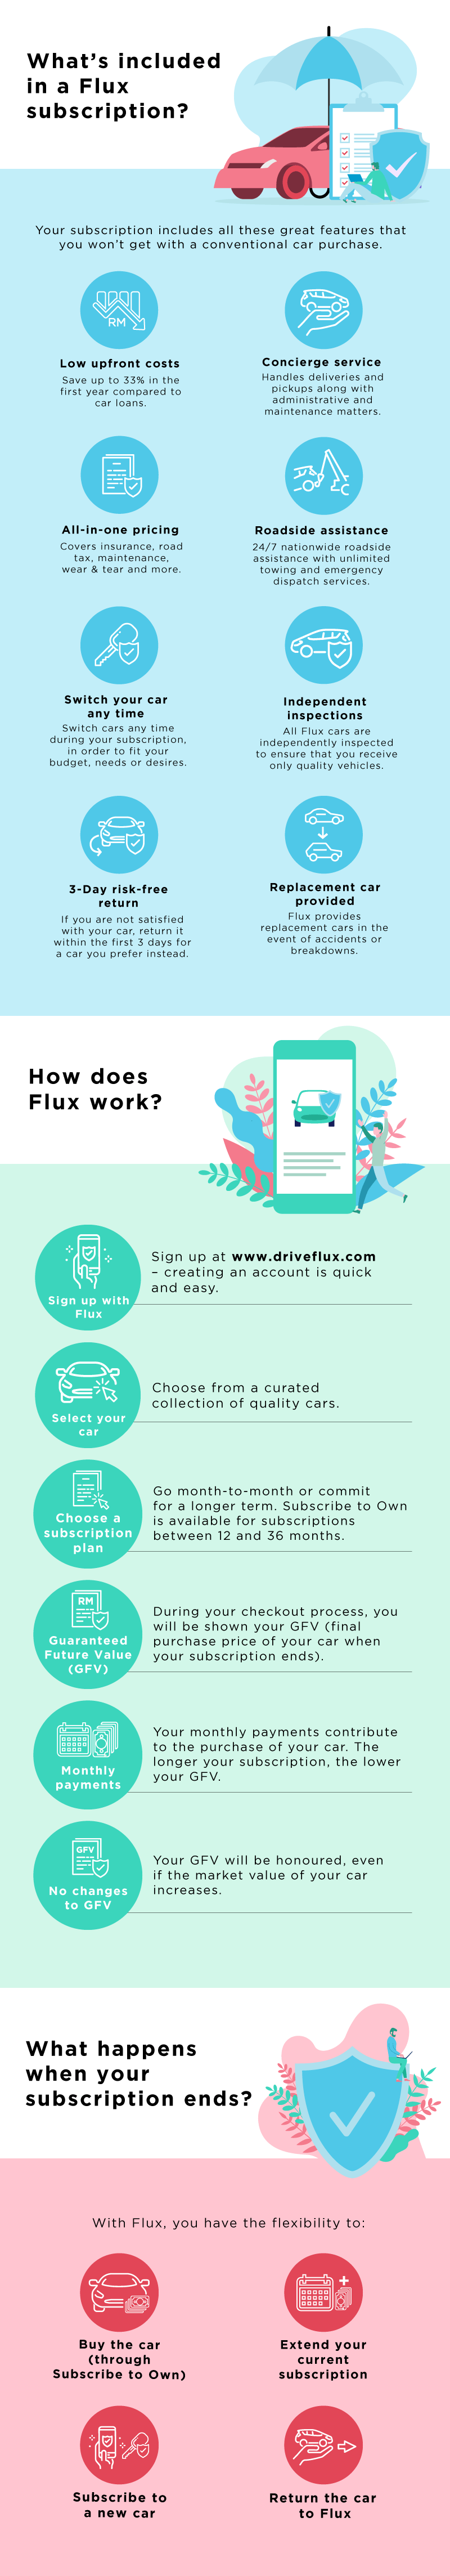 What's included in Flux's car subscription service?